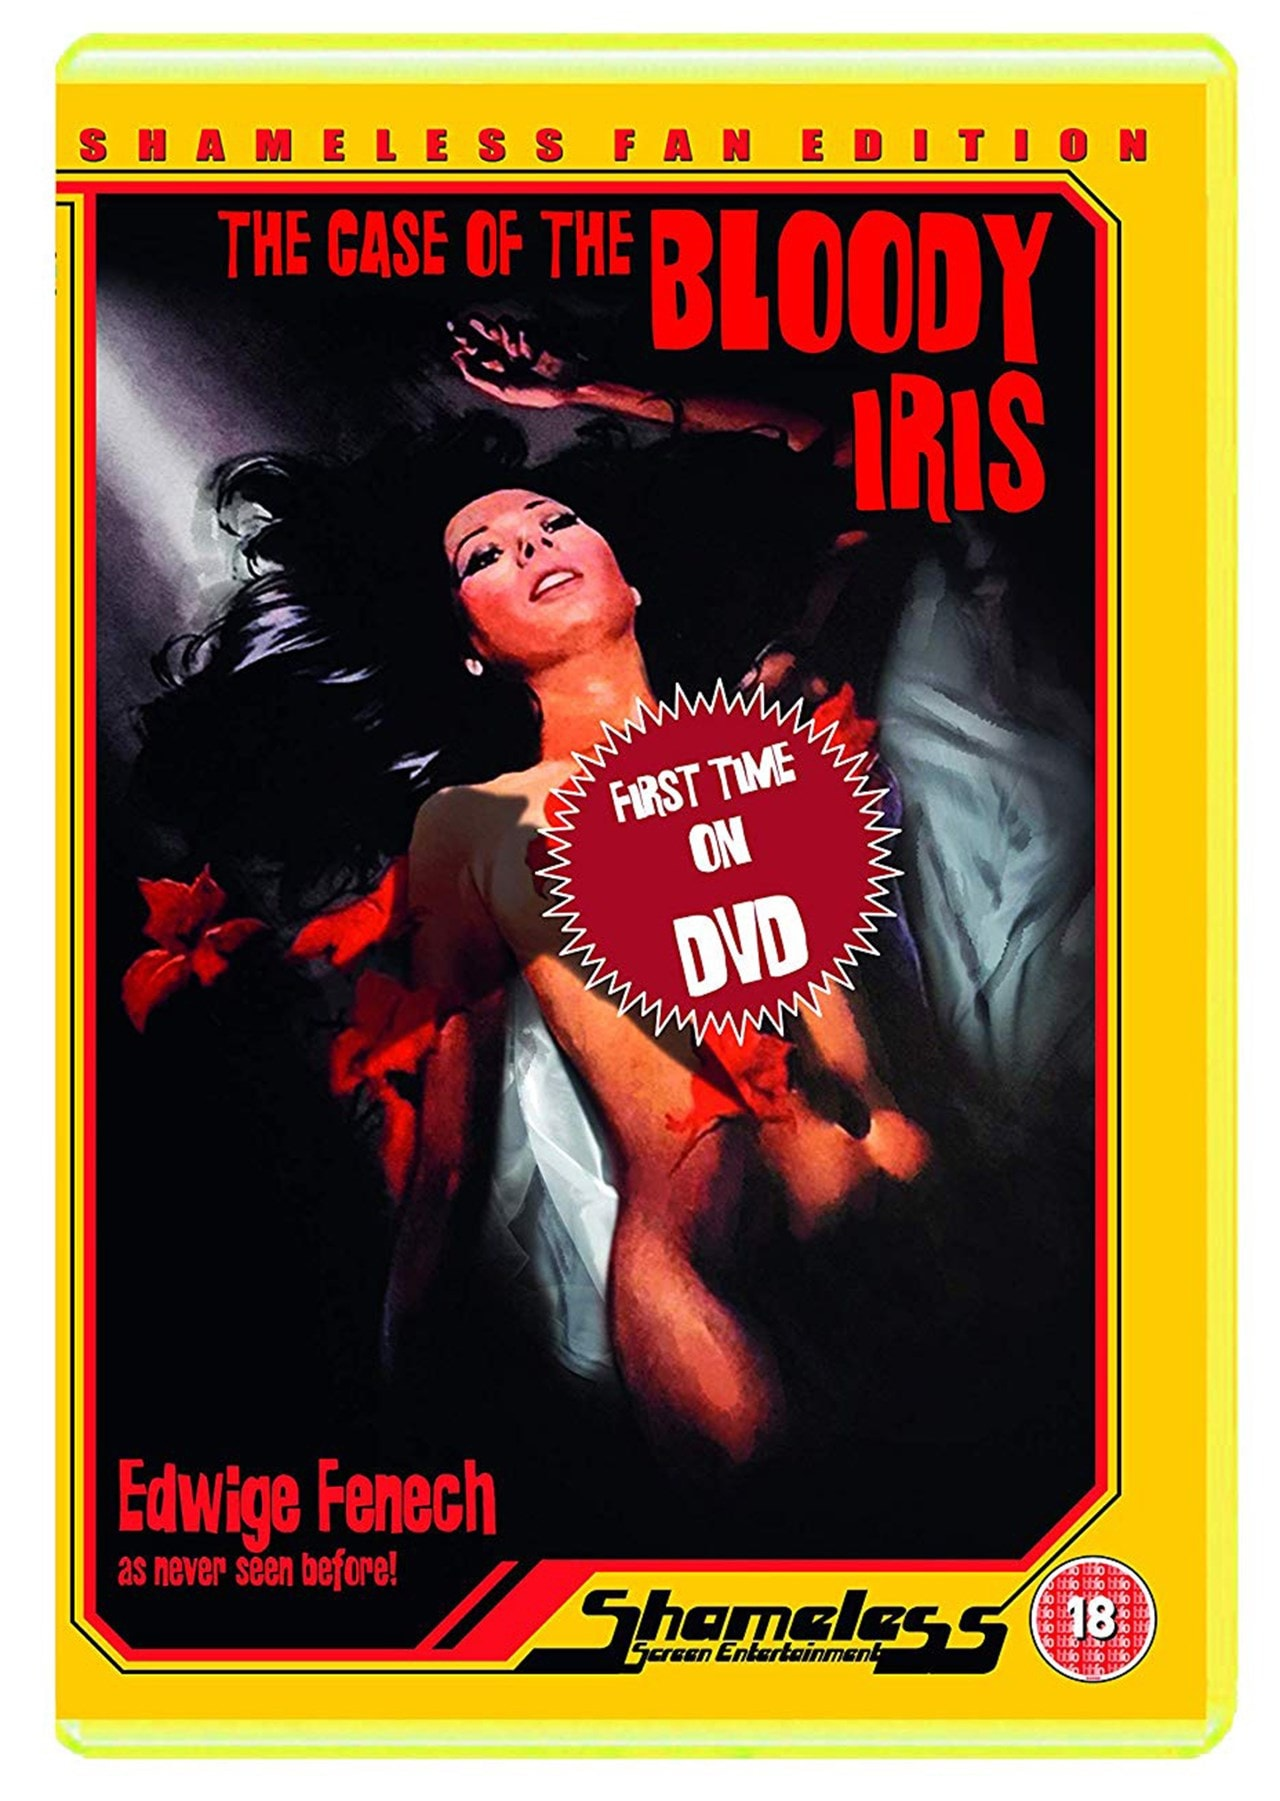 The Case of the Bloody Iris - 1